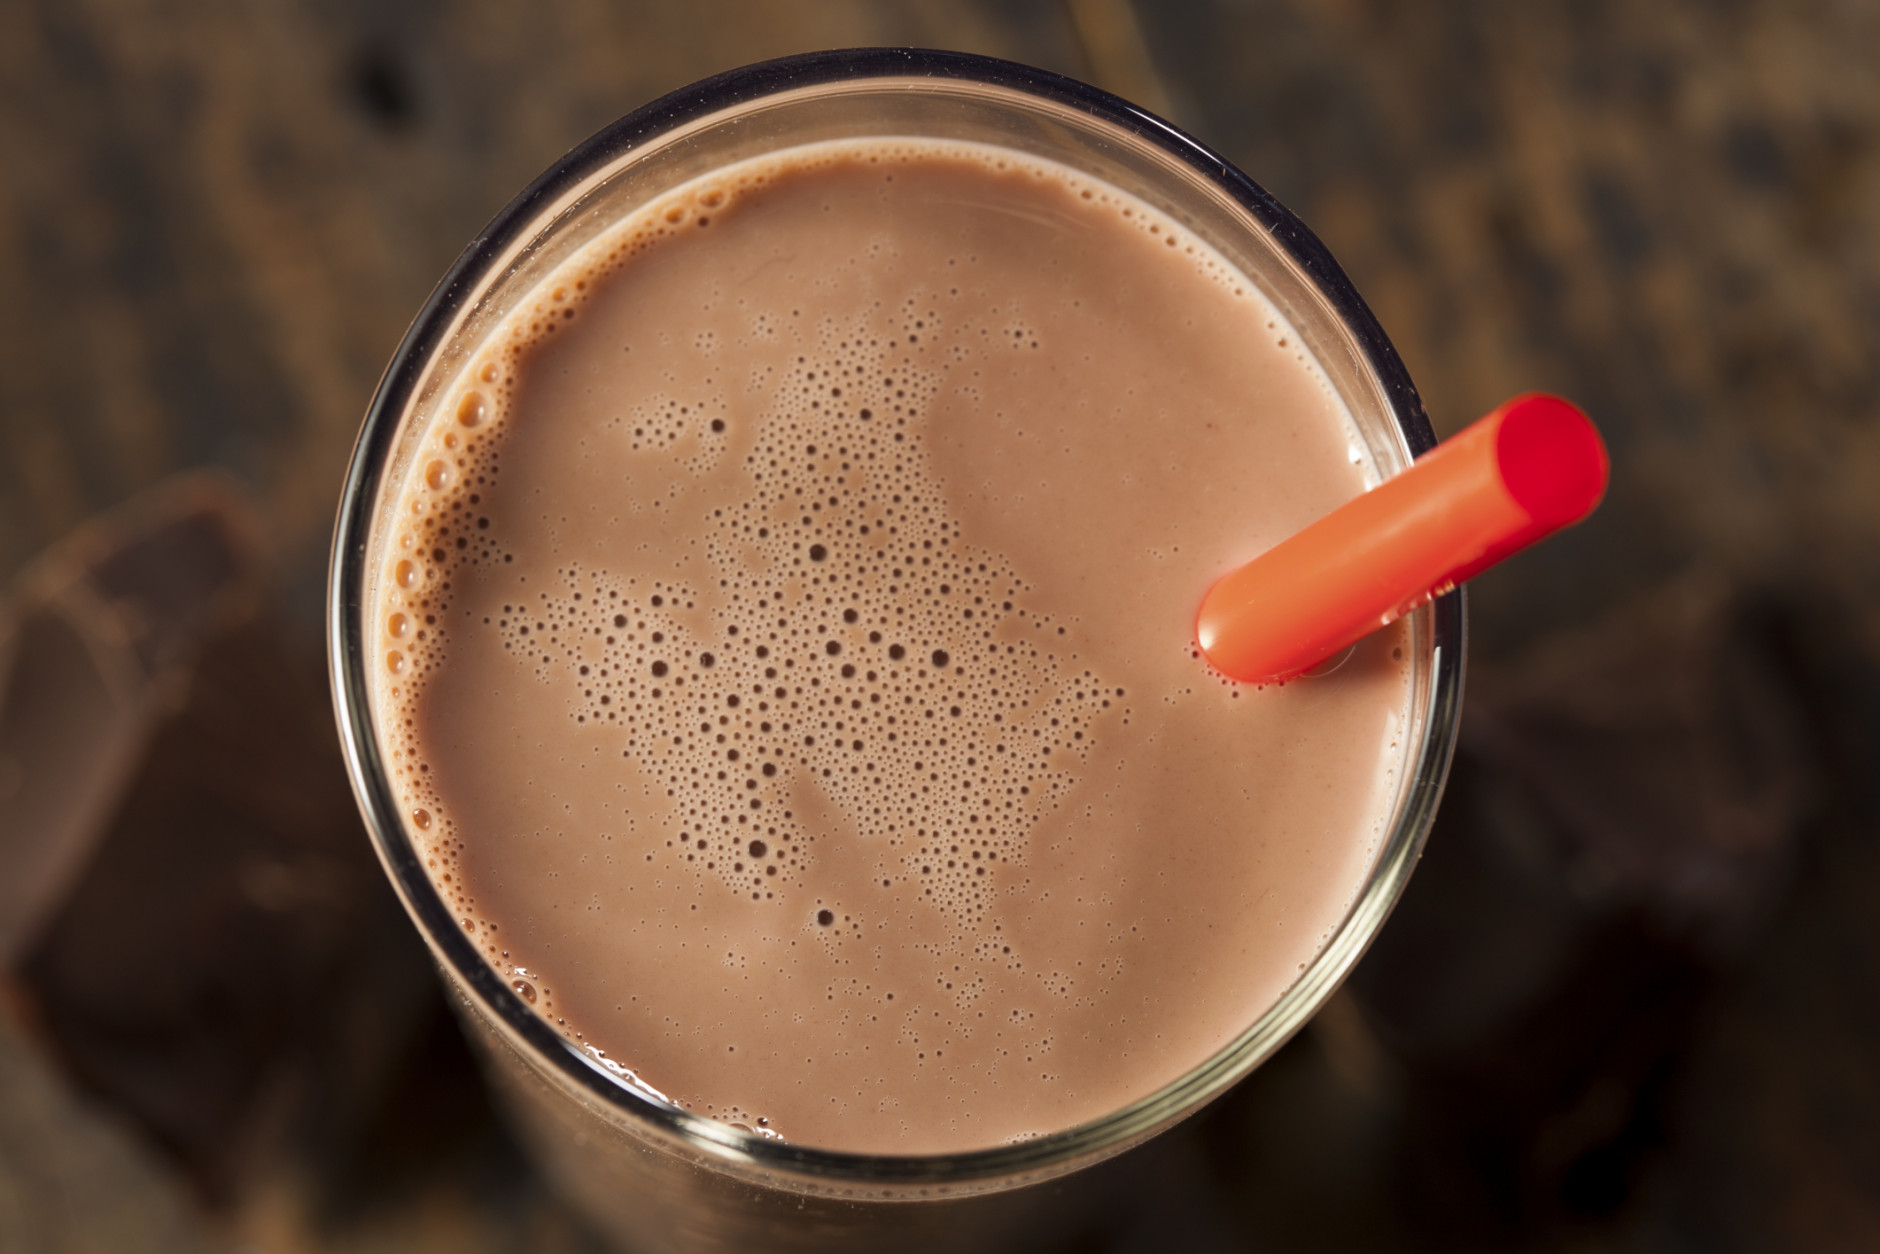 An online survey found  7 percent of Americans think chocolate milk comes from brown cows. (Getty Images/iStockphoto/bhofack2)